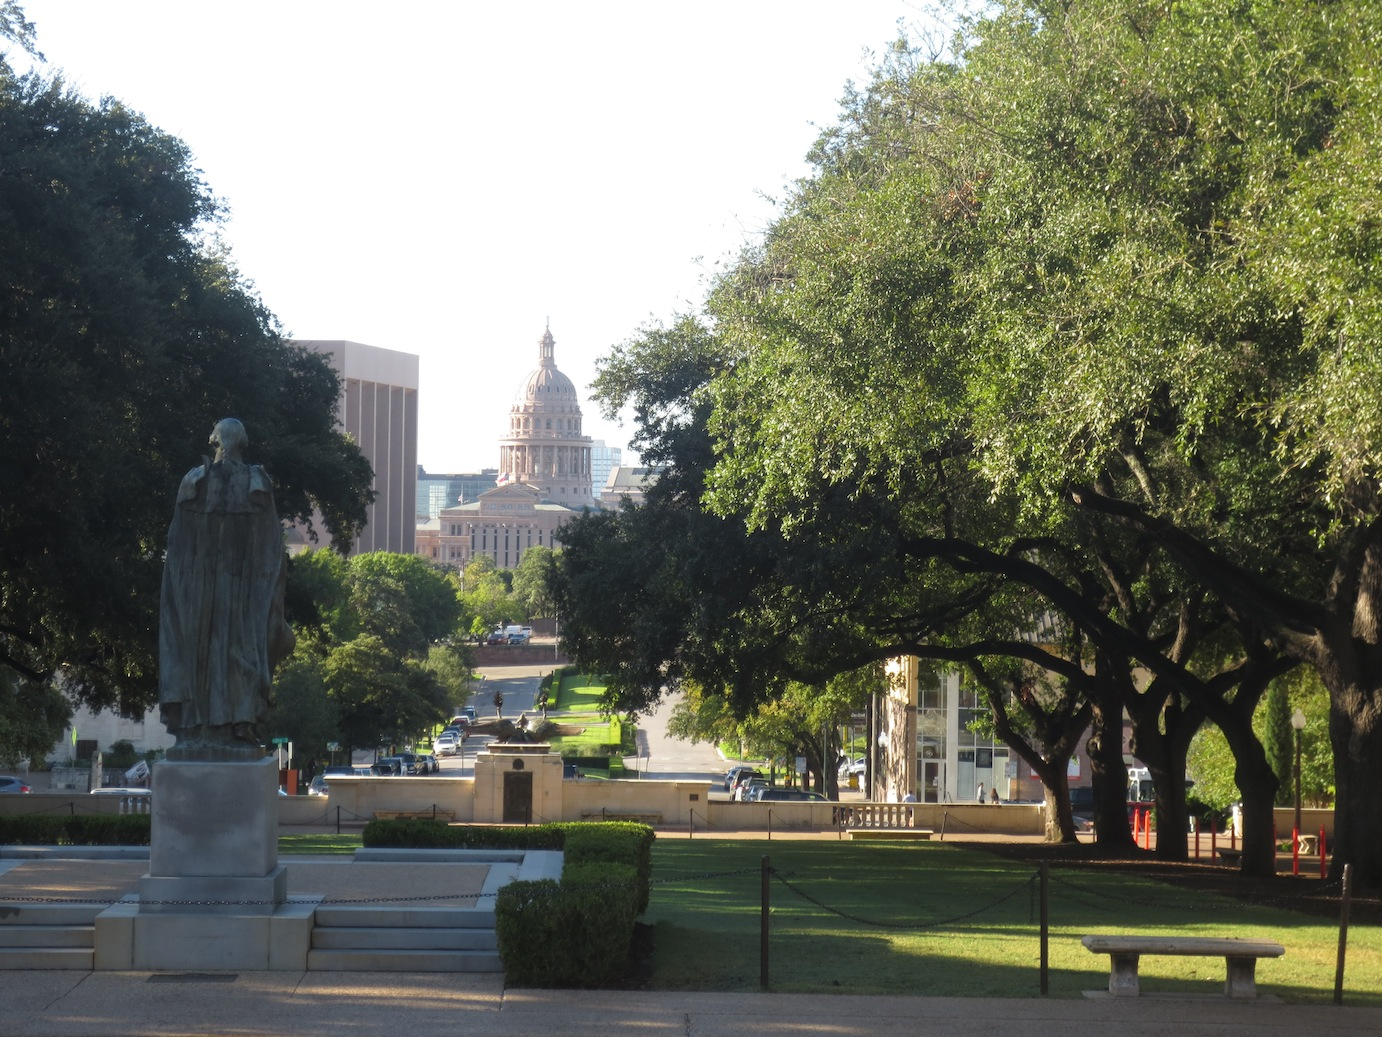 Statue of George Washington overlooking the Austin Capitol building.